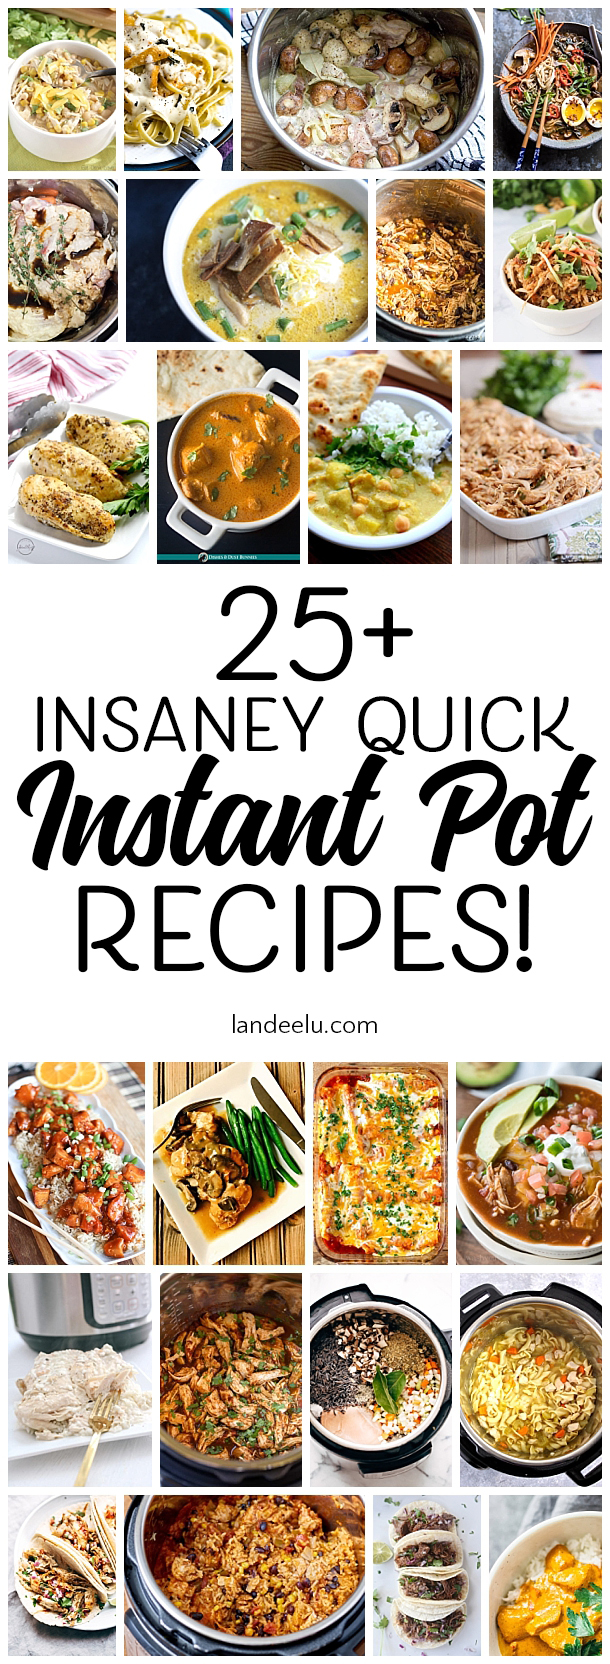 If you're all about getting dinner on the table quickly you must check out these insanely quick instant pot recipes!